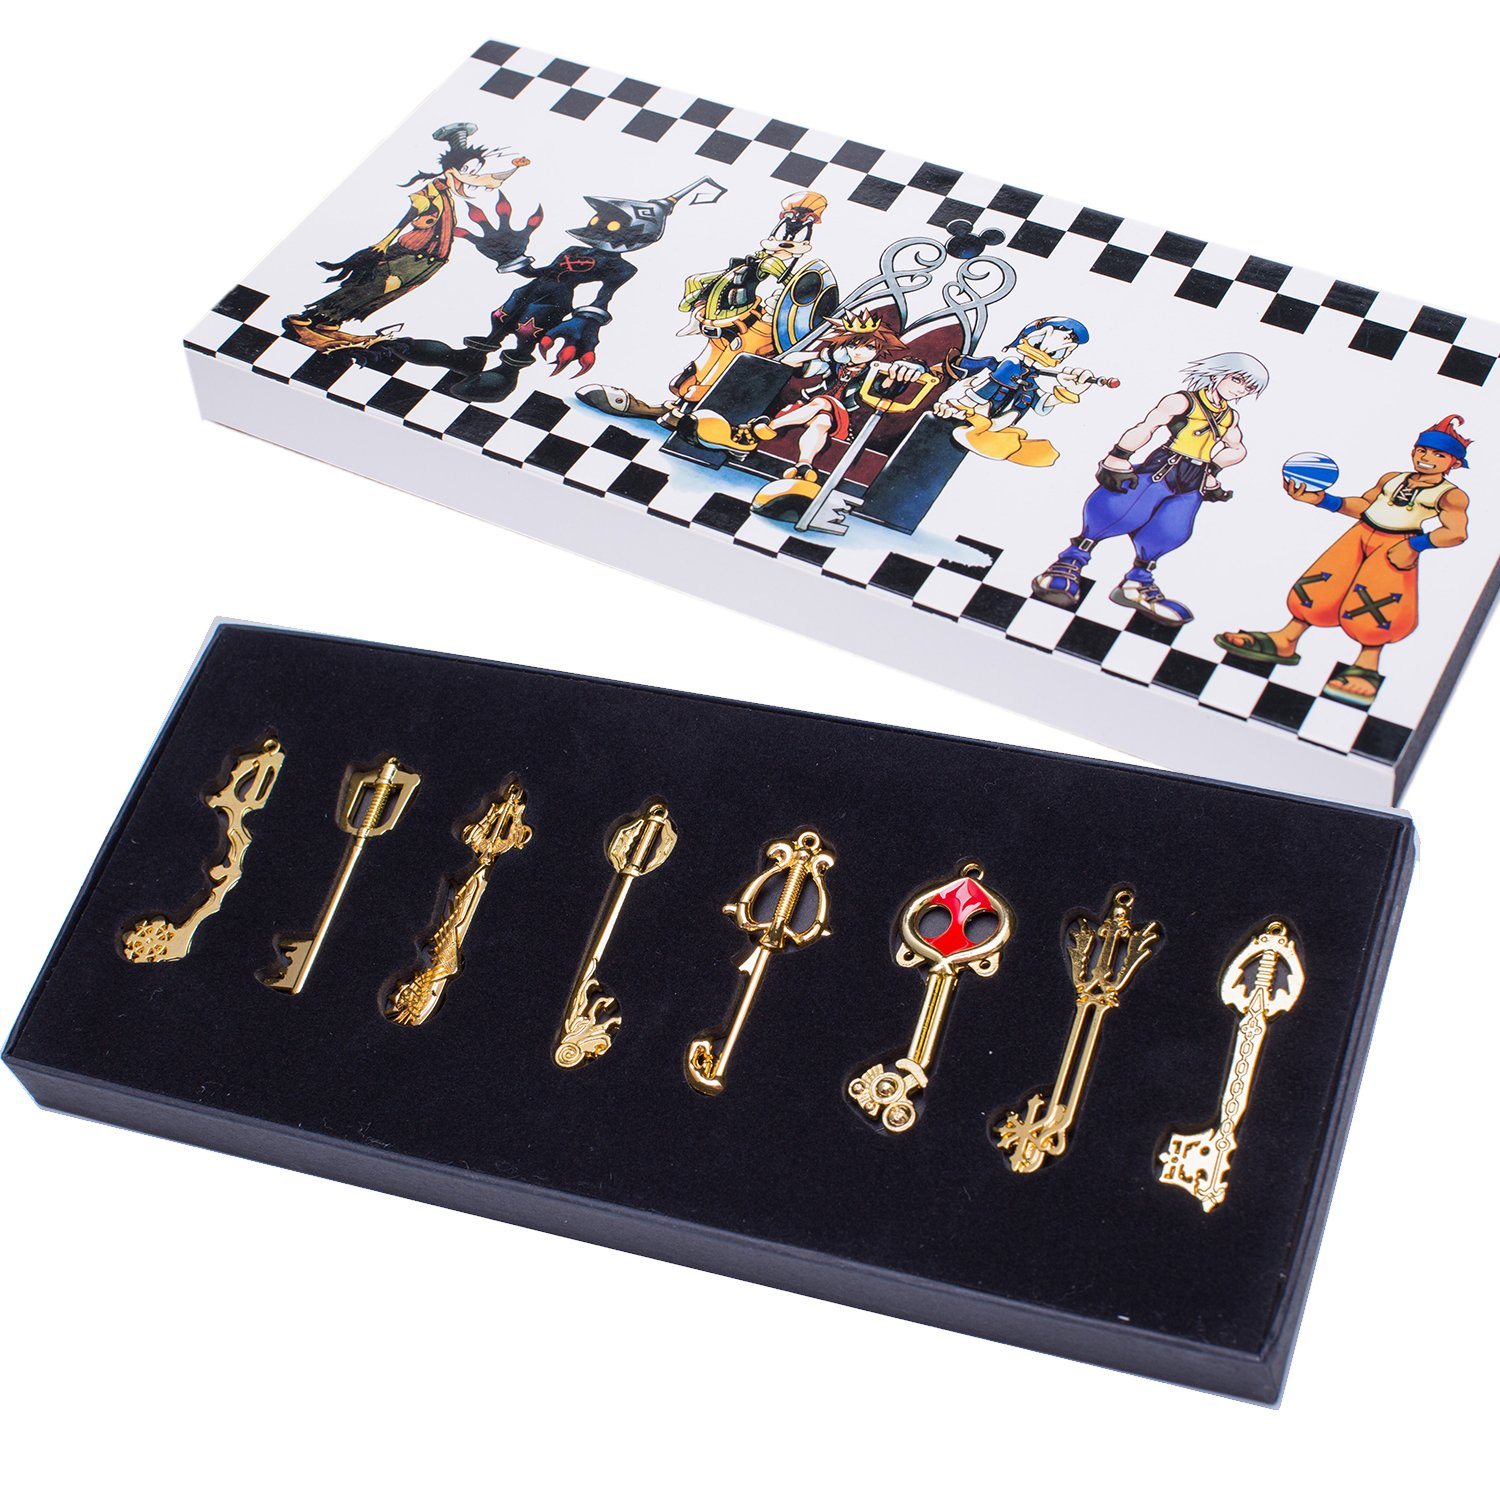 XCOSER® Kingdom Hearts Keyblade Sora Weapon Keychain Pendant for Collection Golden 8pcs